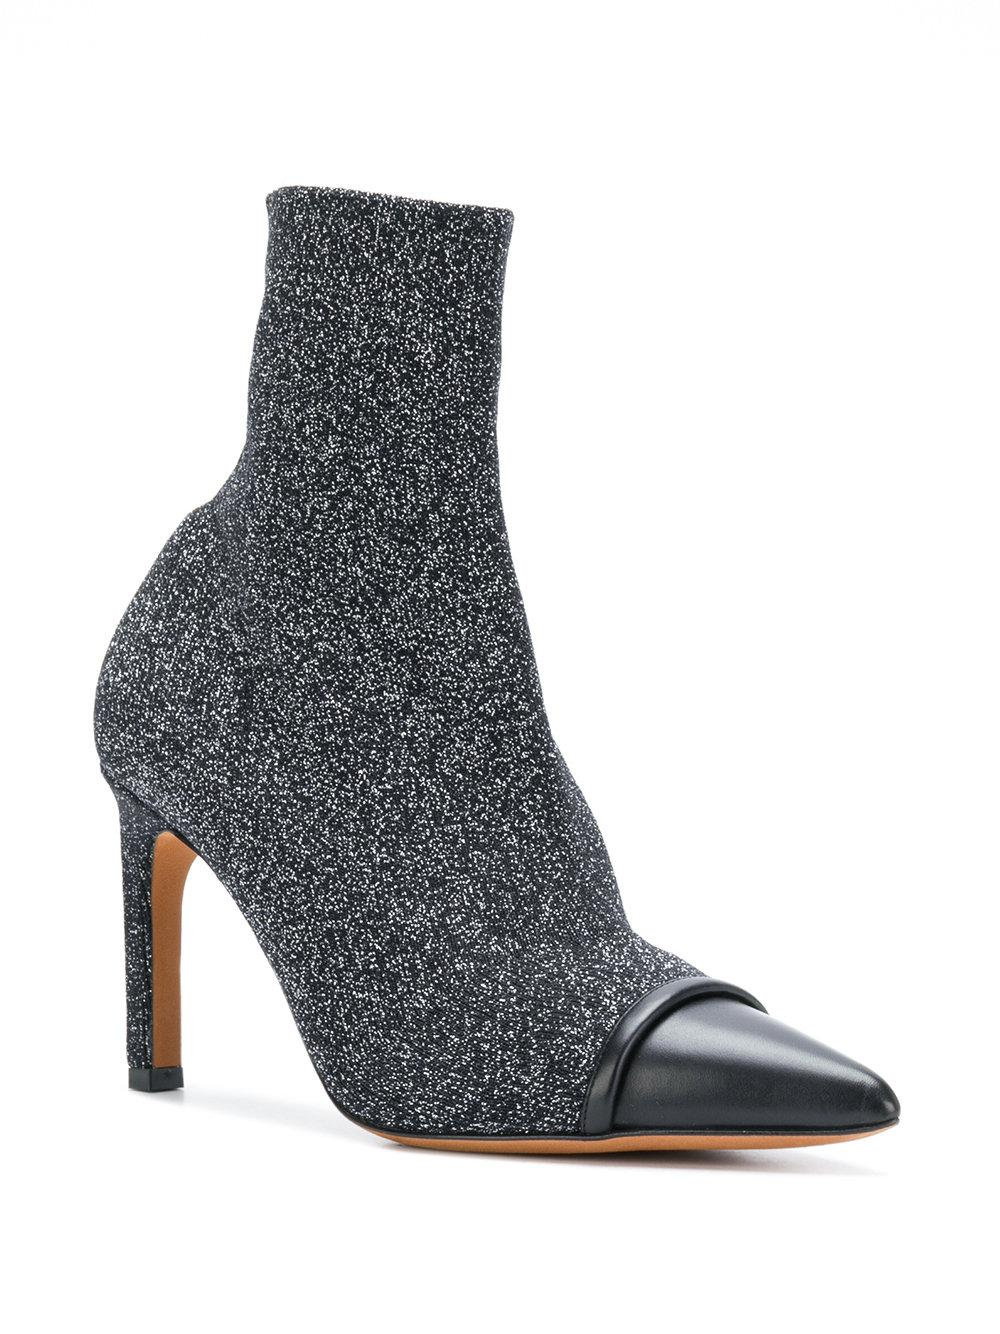 Givenchy Leather Contrast Toe Cap Ankle Boots in Black